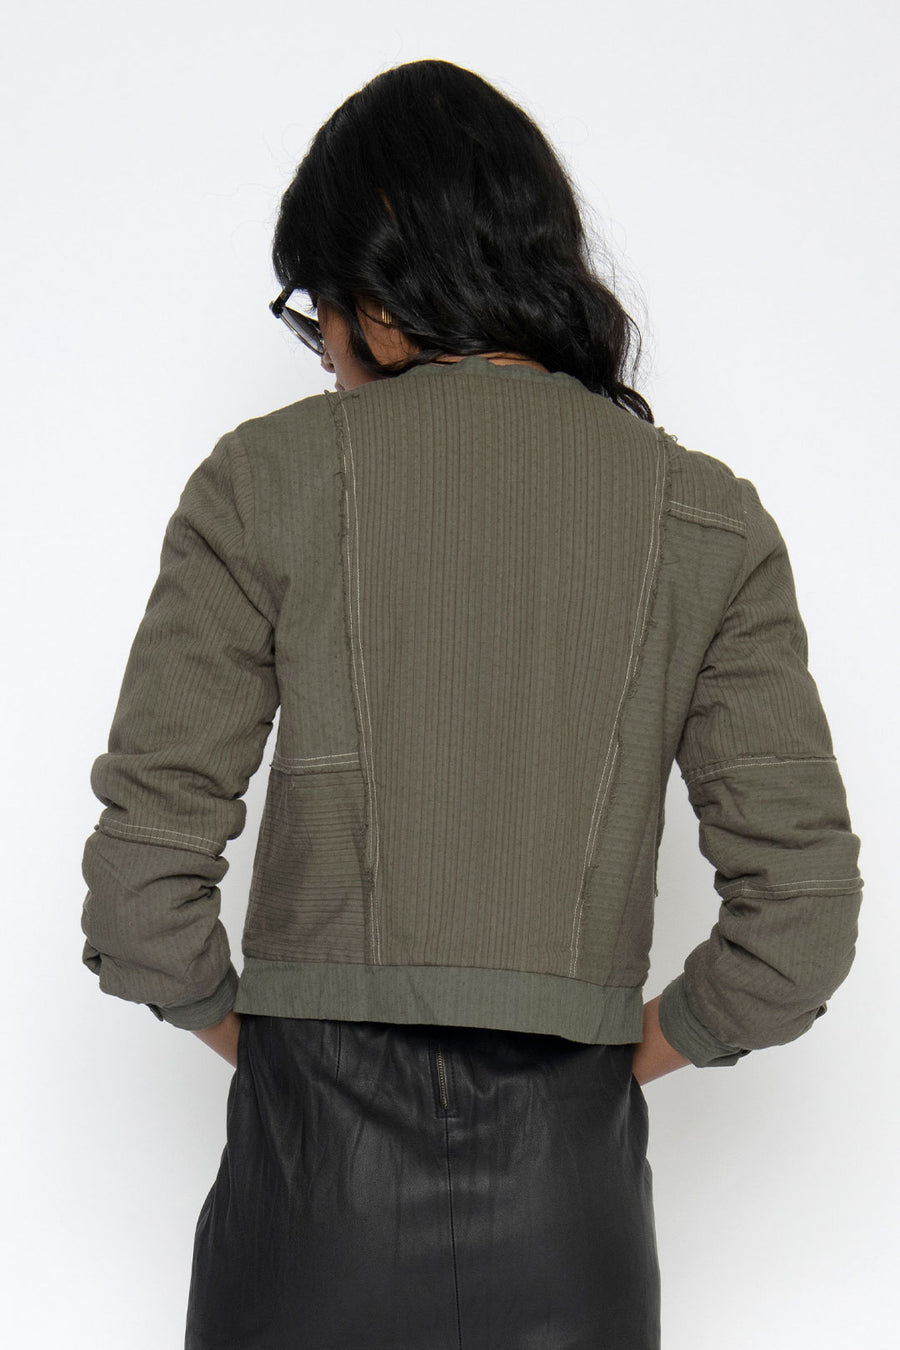 BODIE JAPANESE COTTON JACKET - ARMY